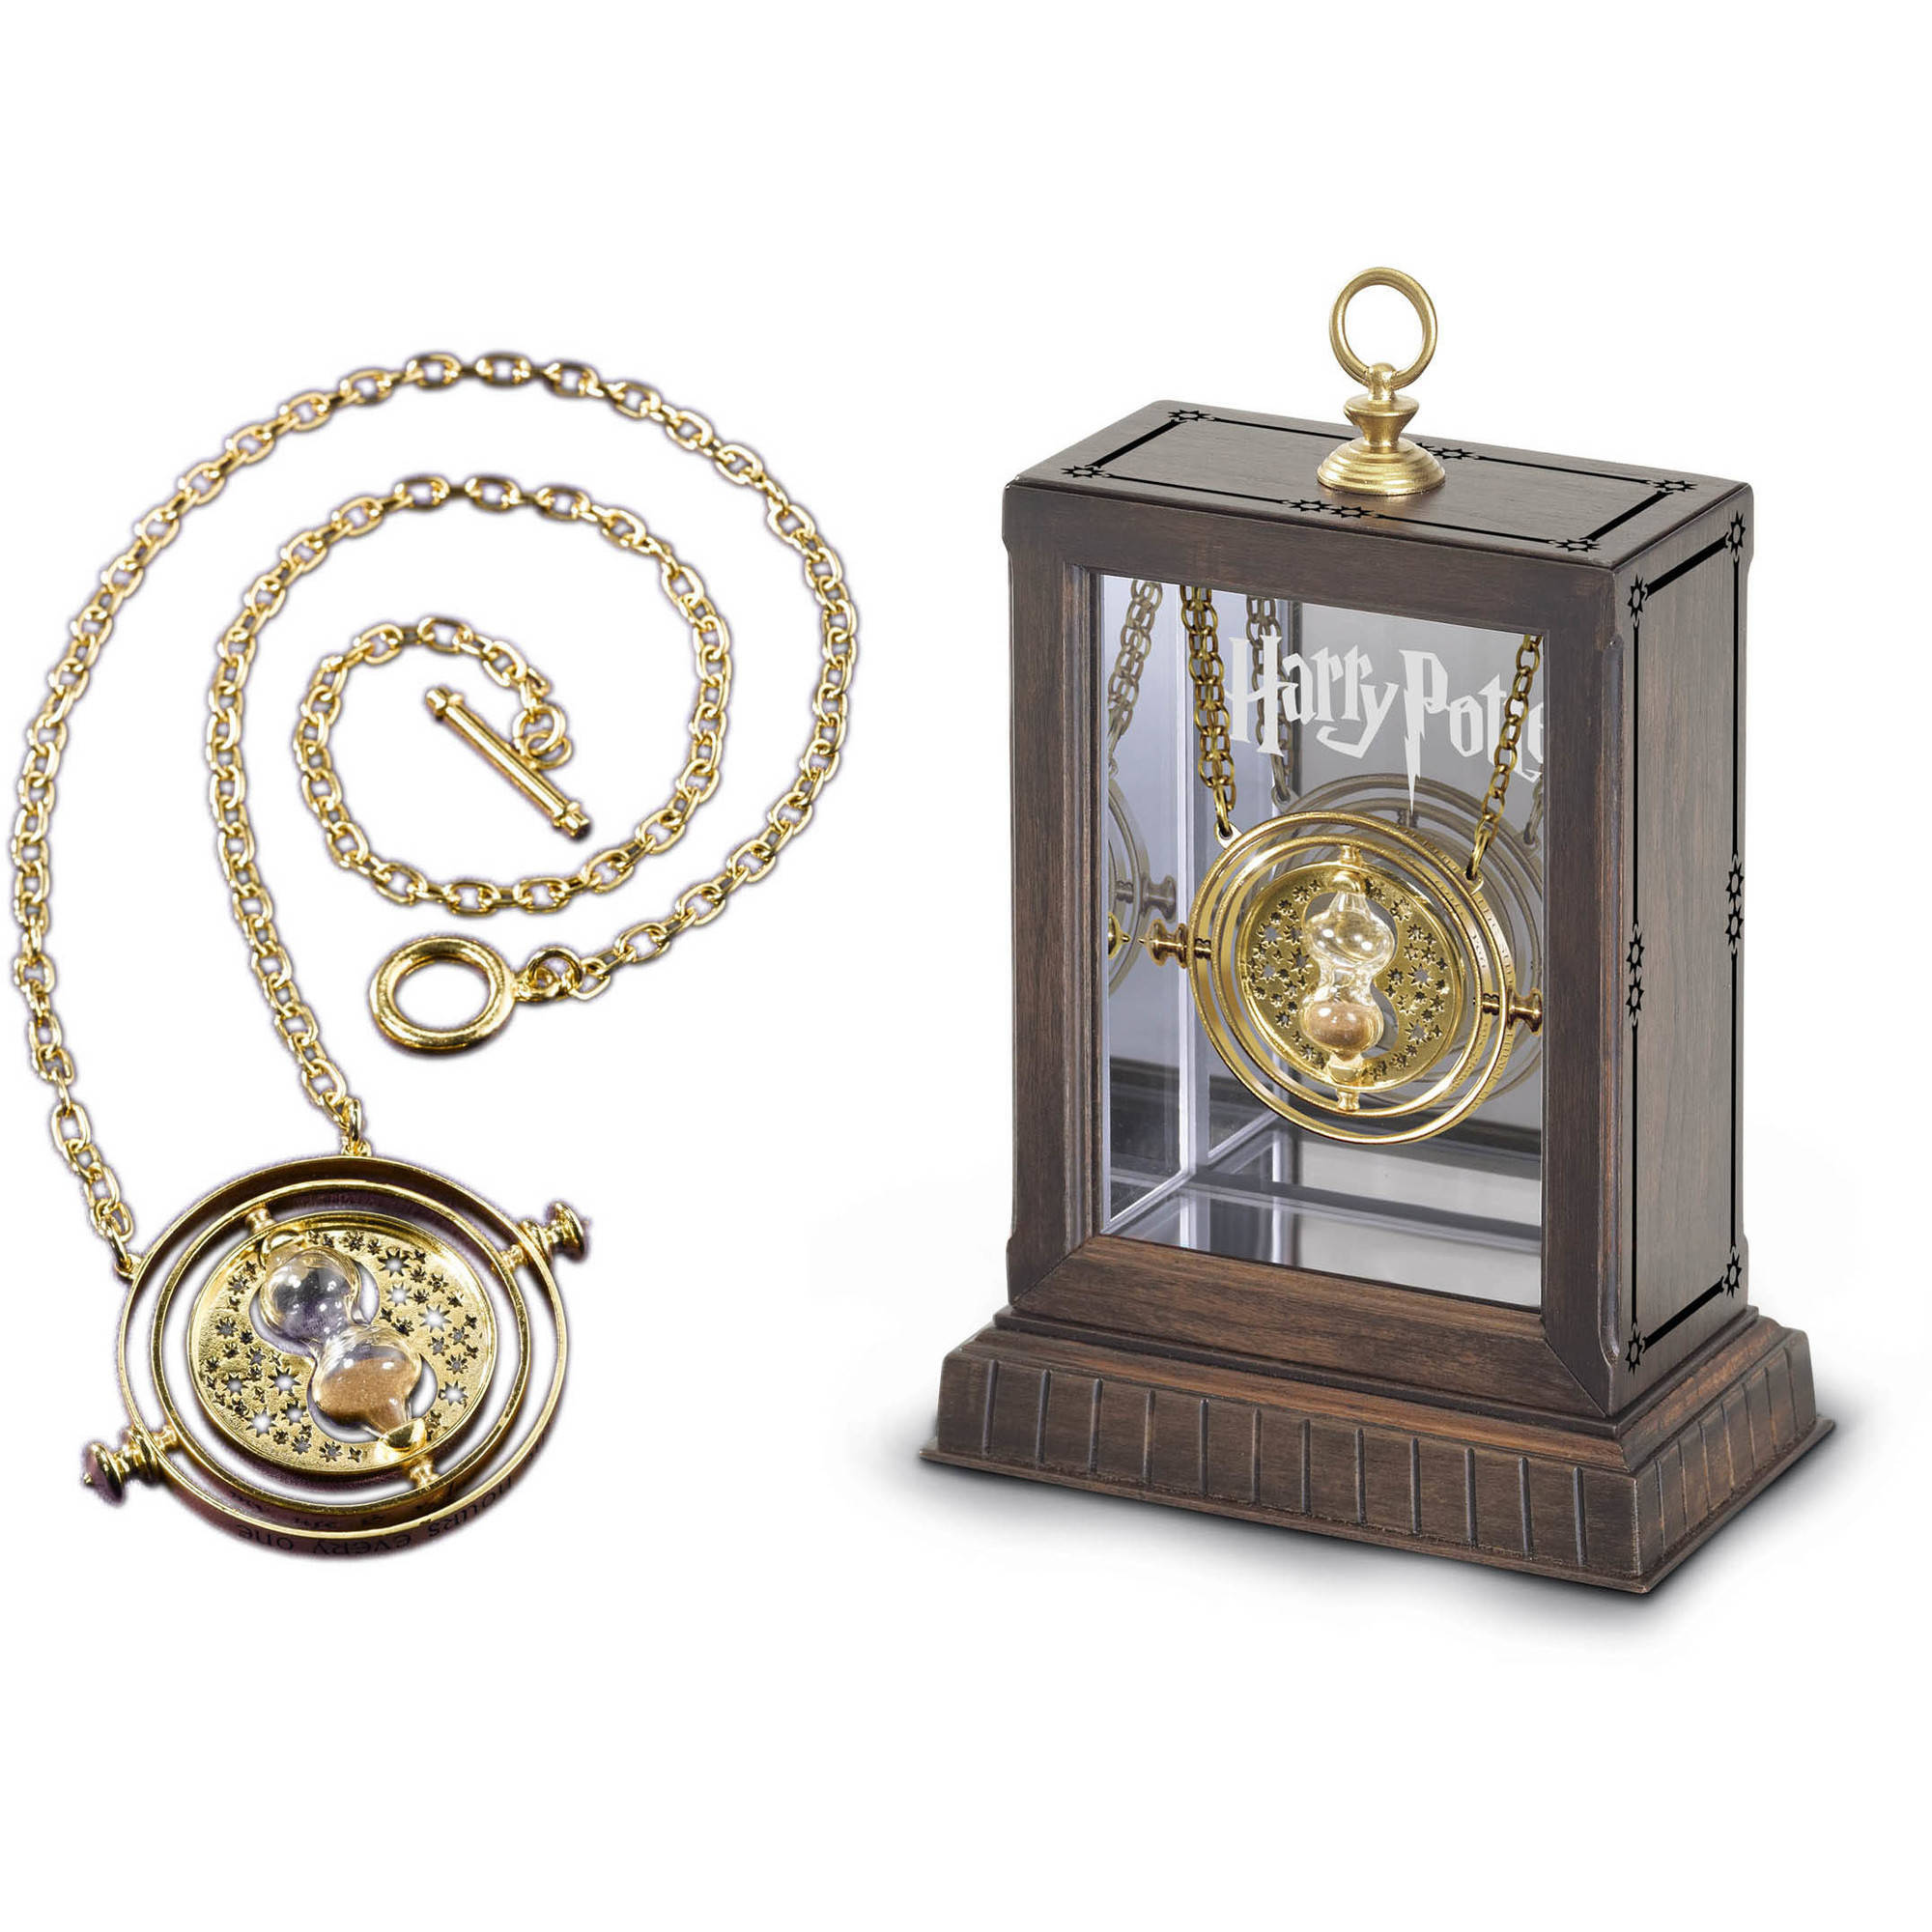 Harry Potter: The Hermione Granger's Time Turner and Collector's Box by Generic